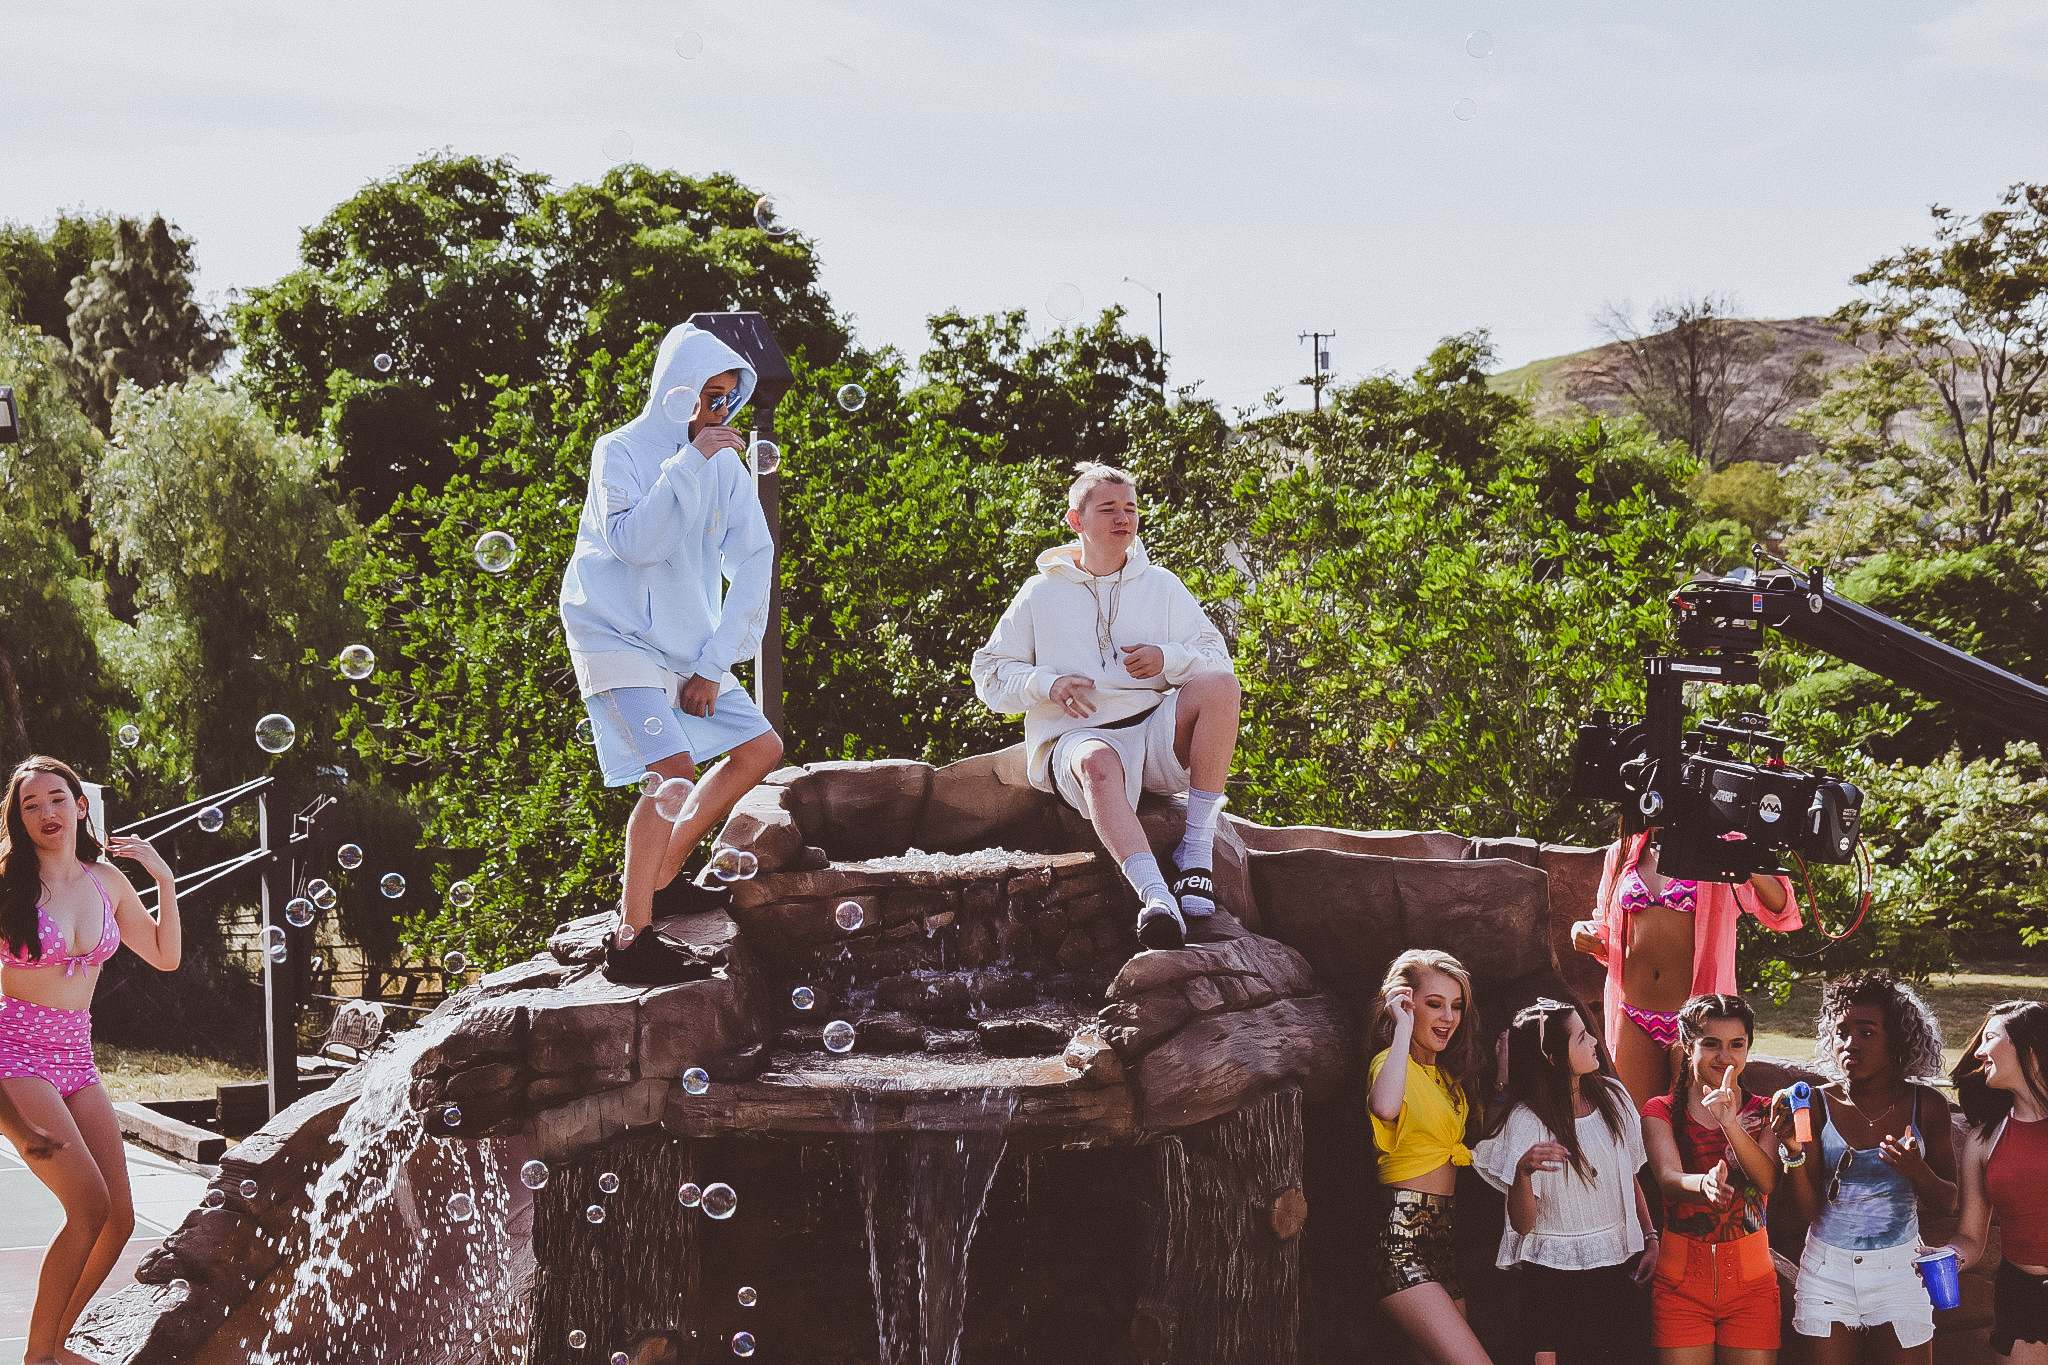 marcus-and-martinus-behind-the-scenes-04.jpg